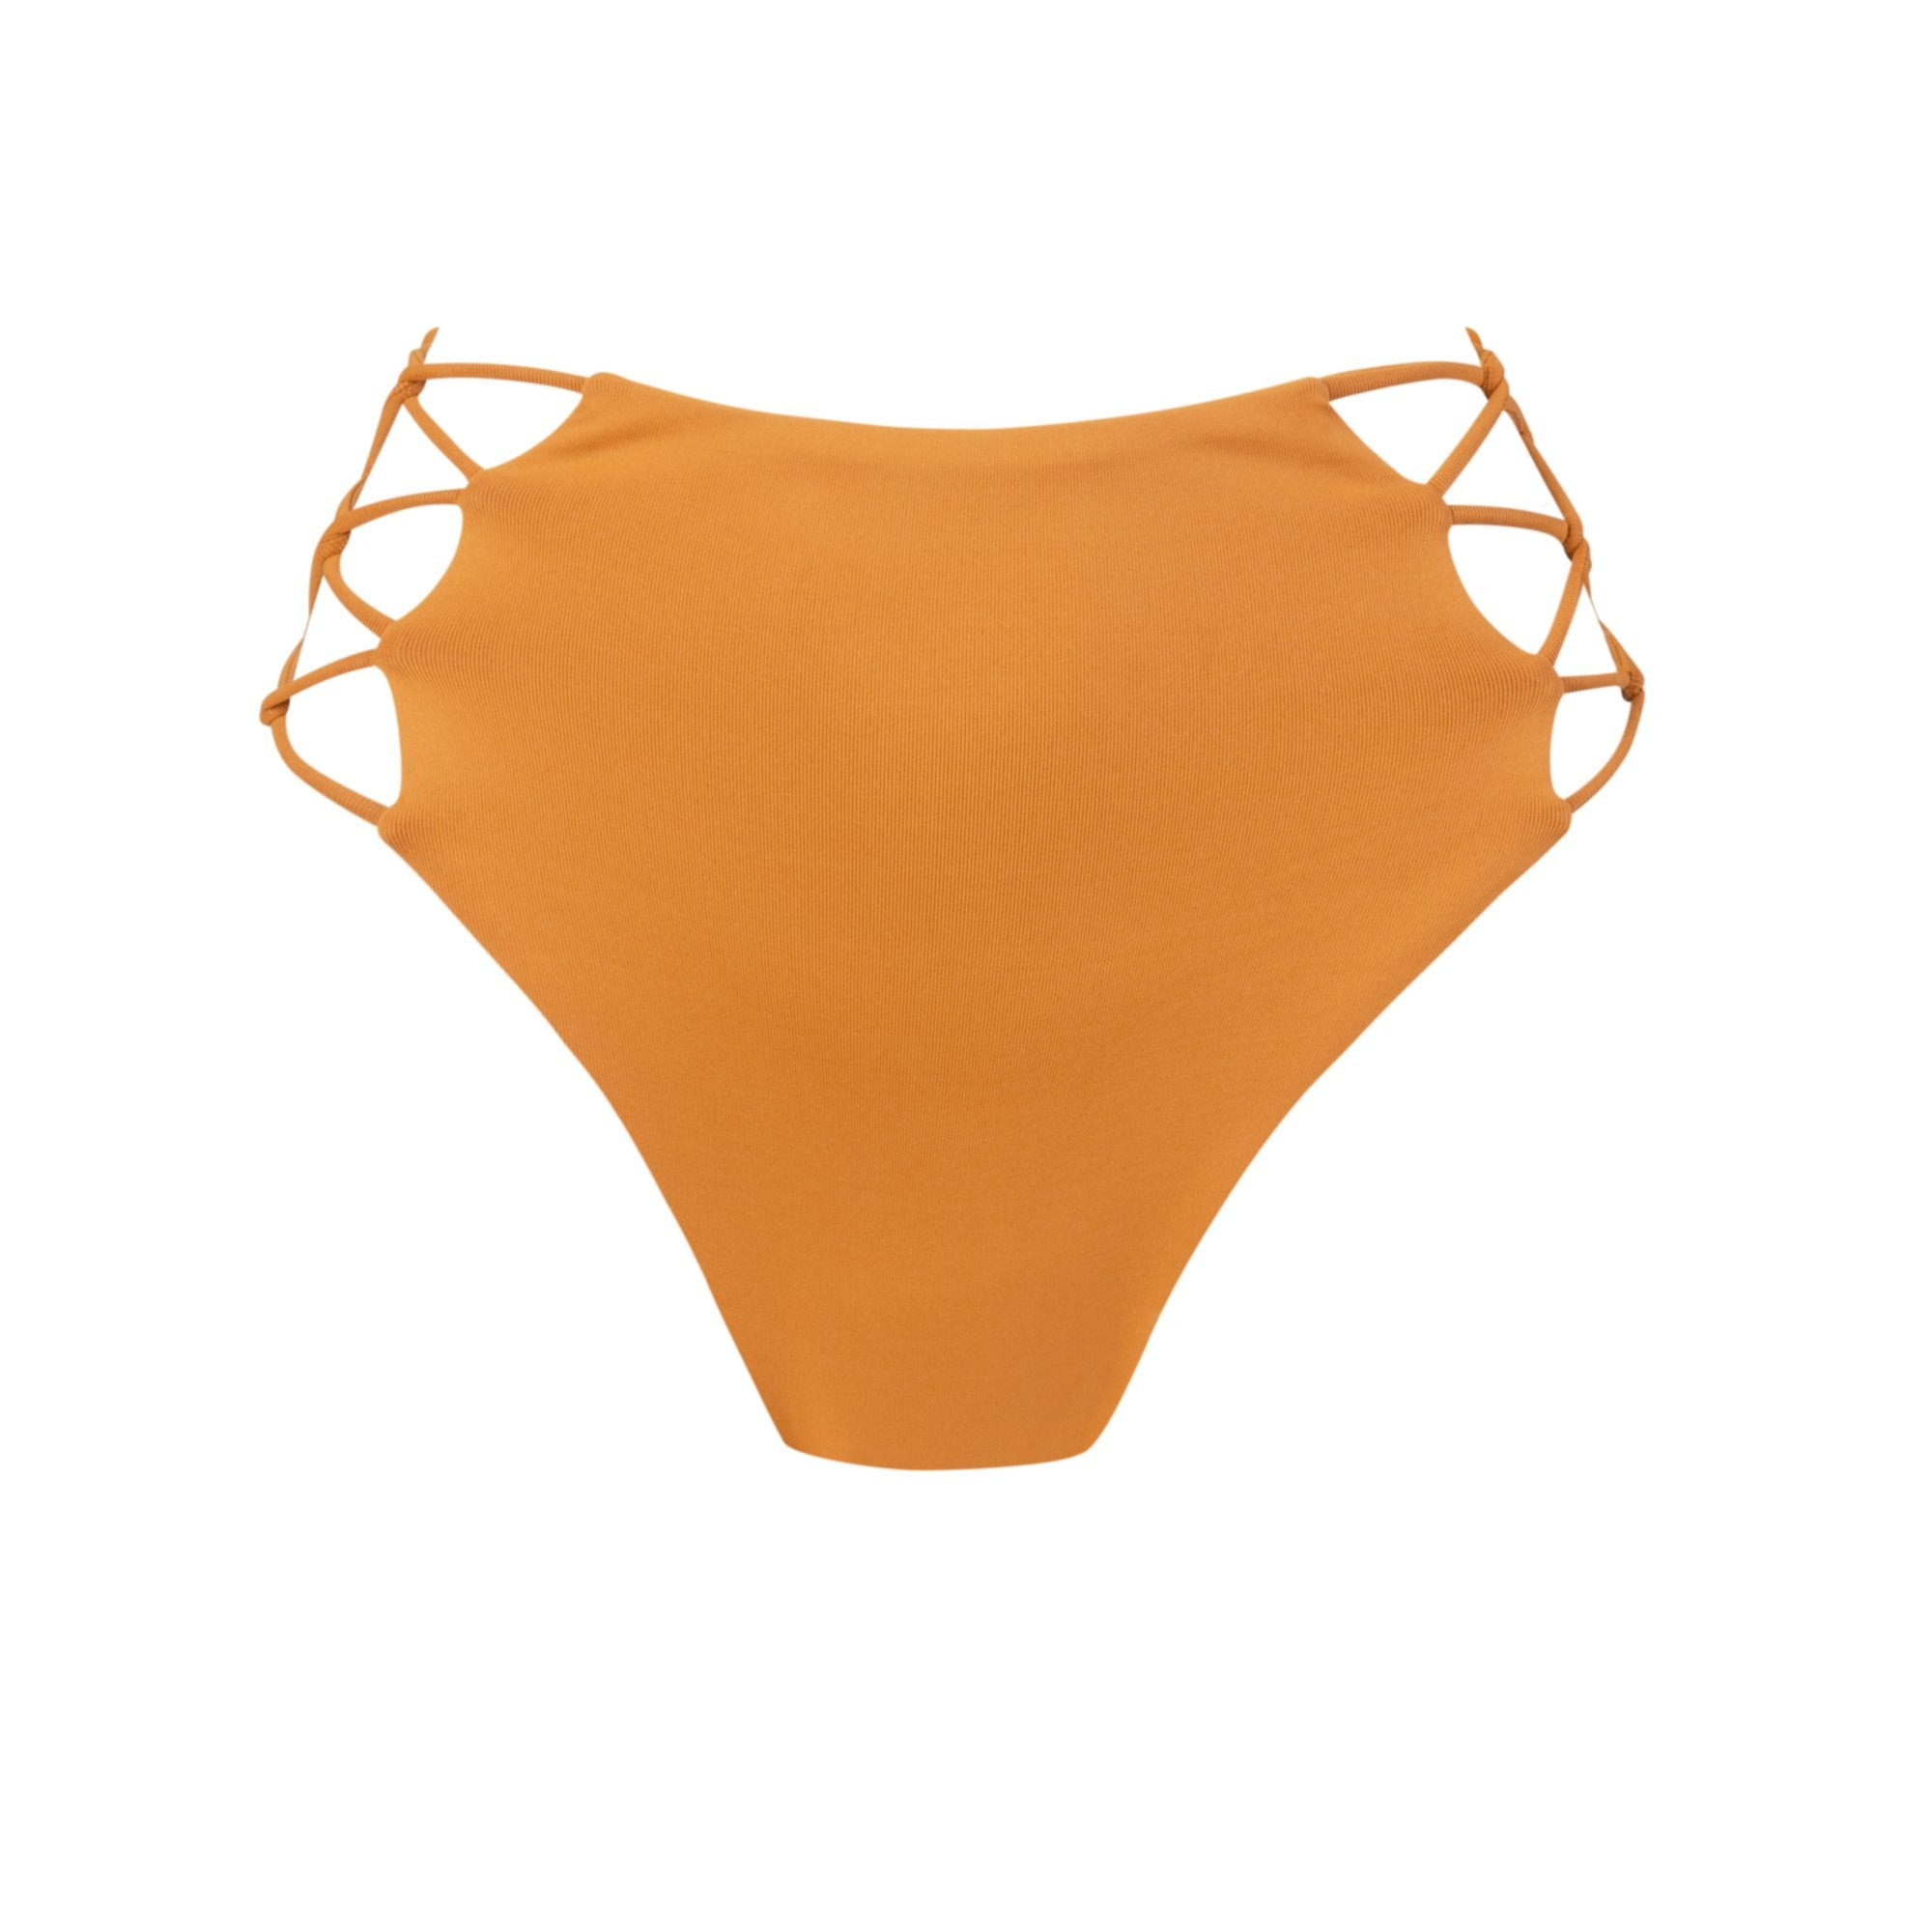 Grove Bikini Bottom in Pumpkin - Tuhkana